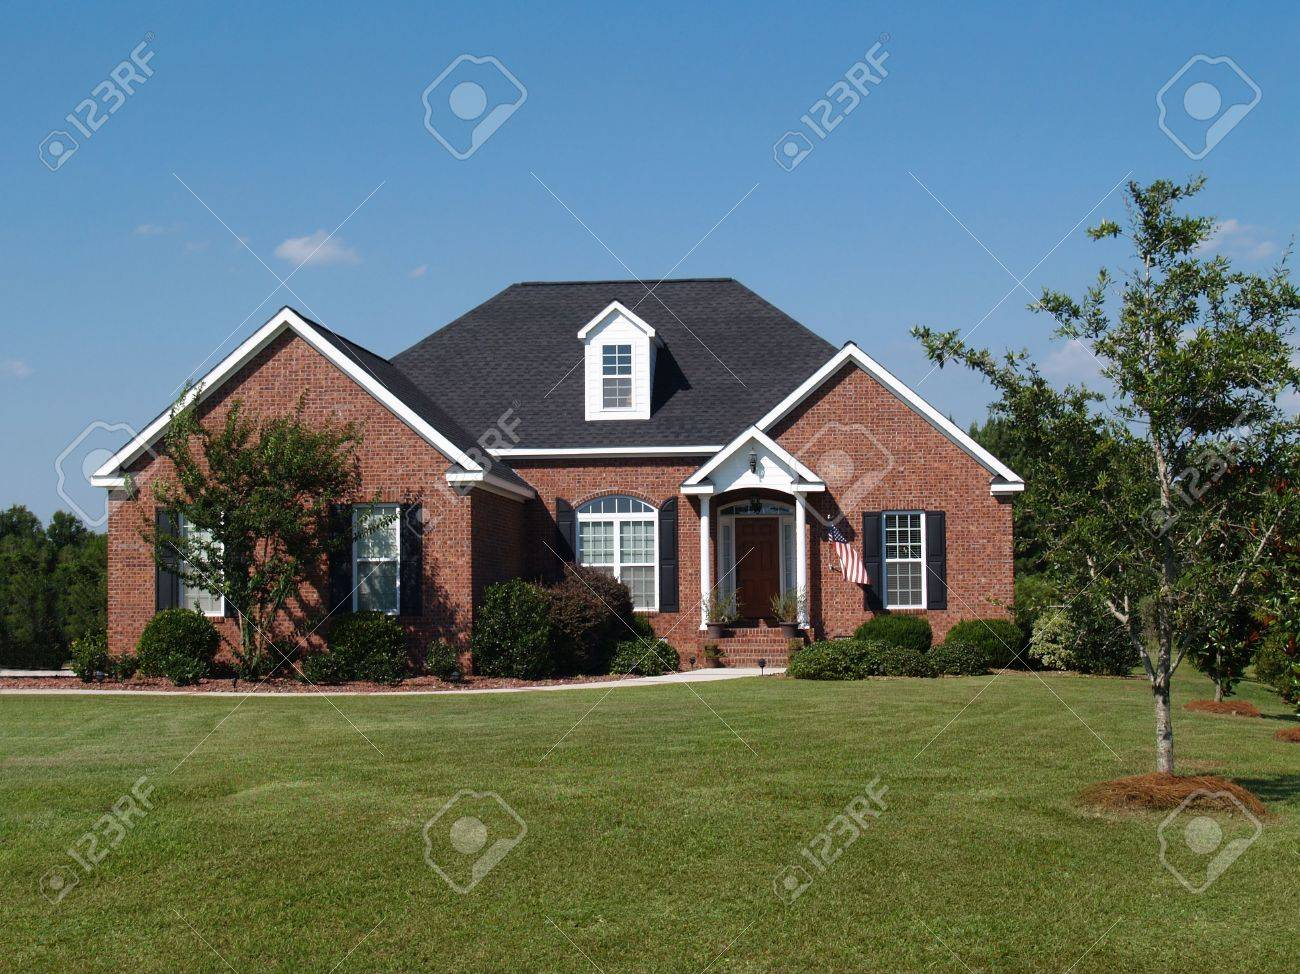 One story new red brick residential home. Stock Photo - 5580910